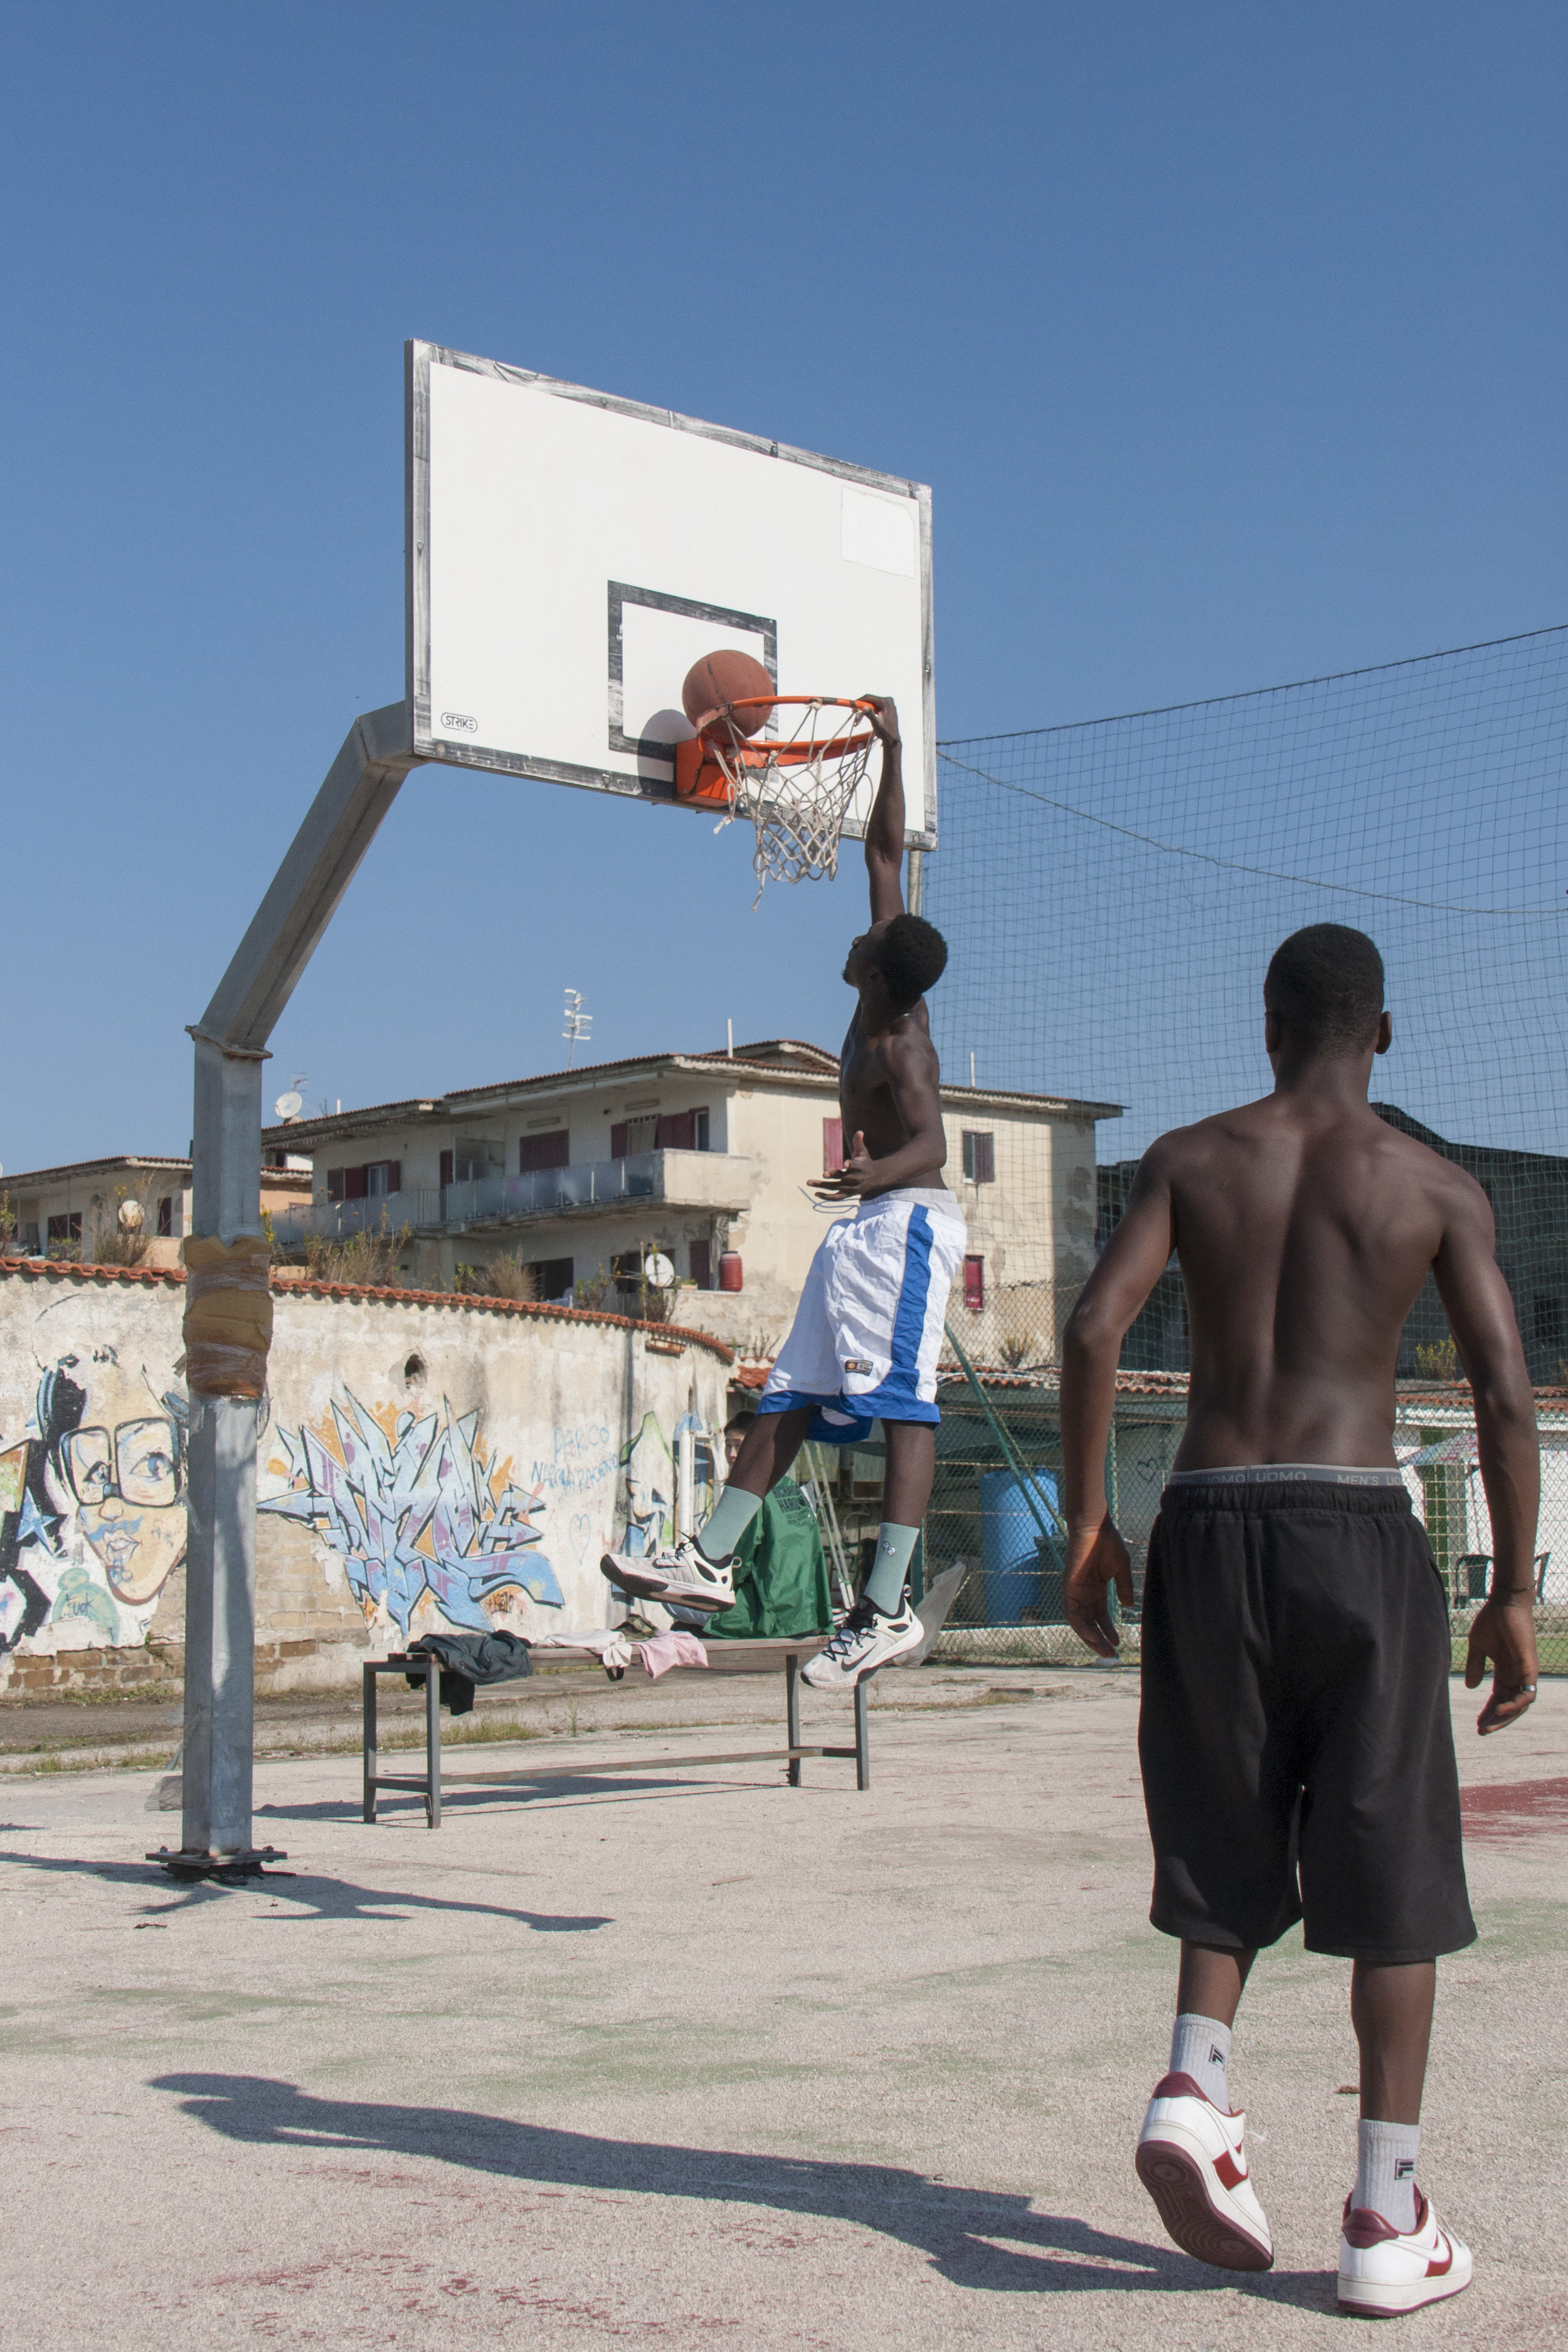 Practice makes perfect: James, a member of the Tam Tam Basket, making a dunk. Castel Volturno. Naples, Italy